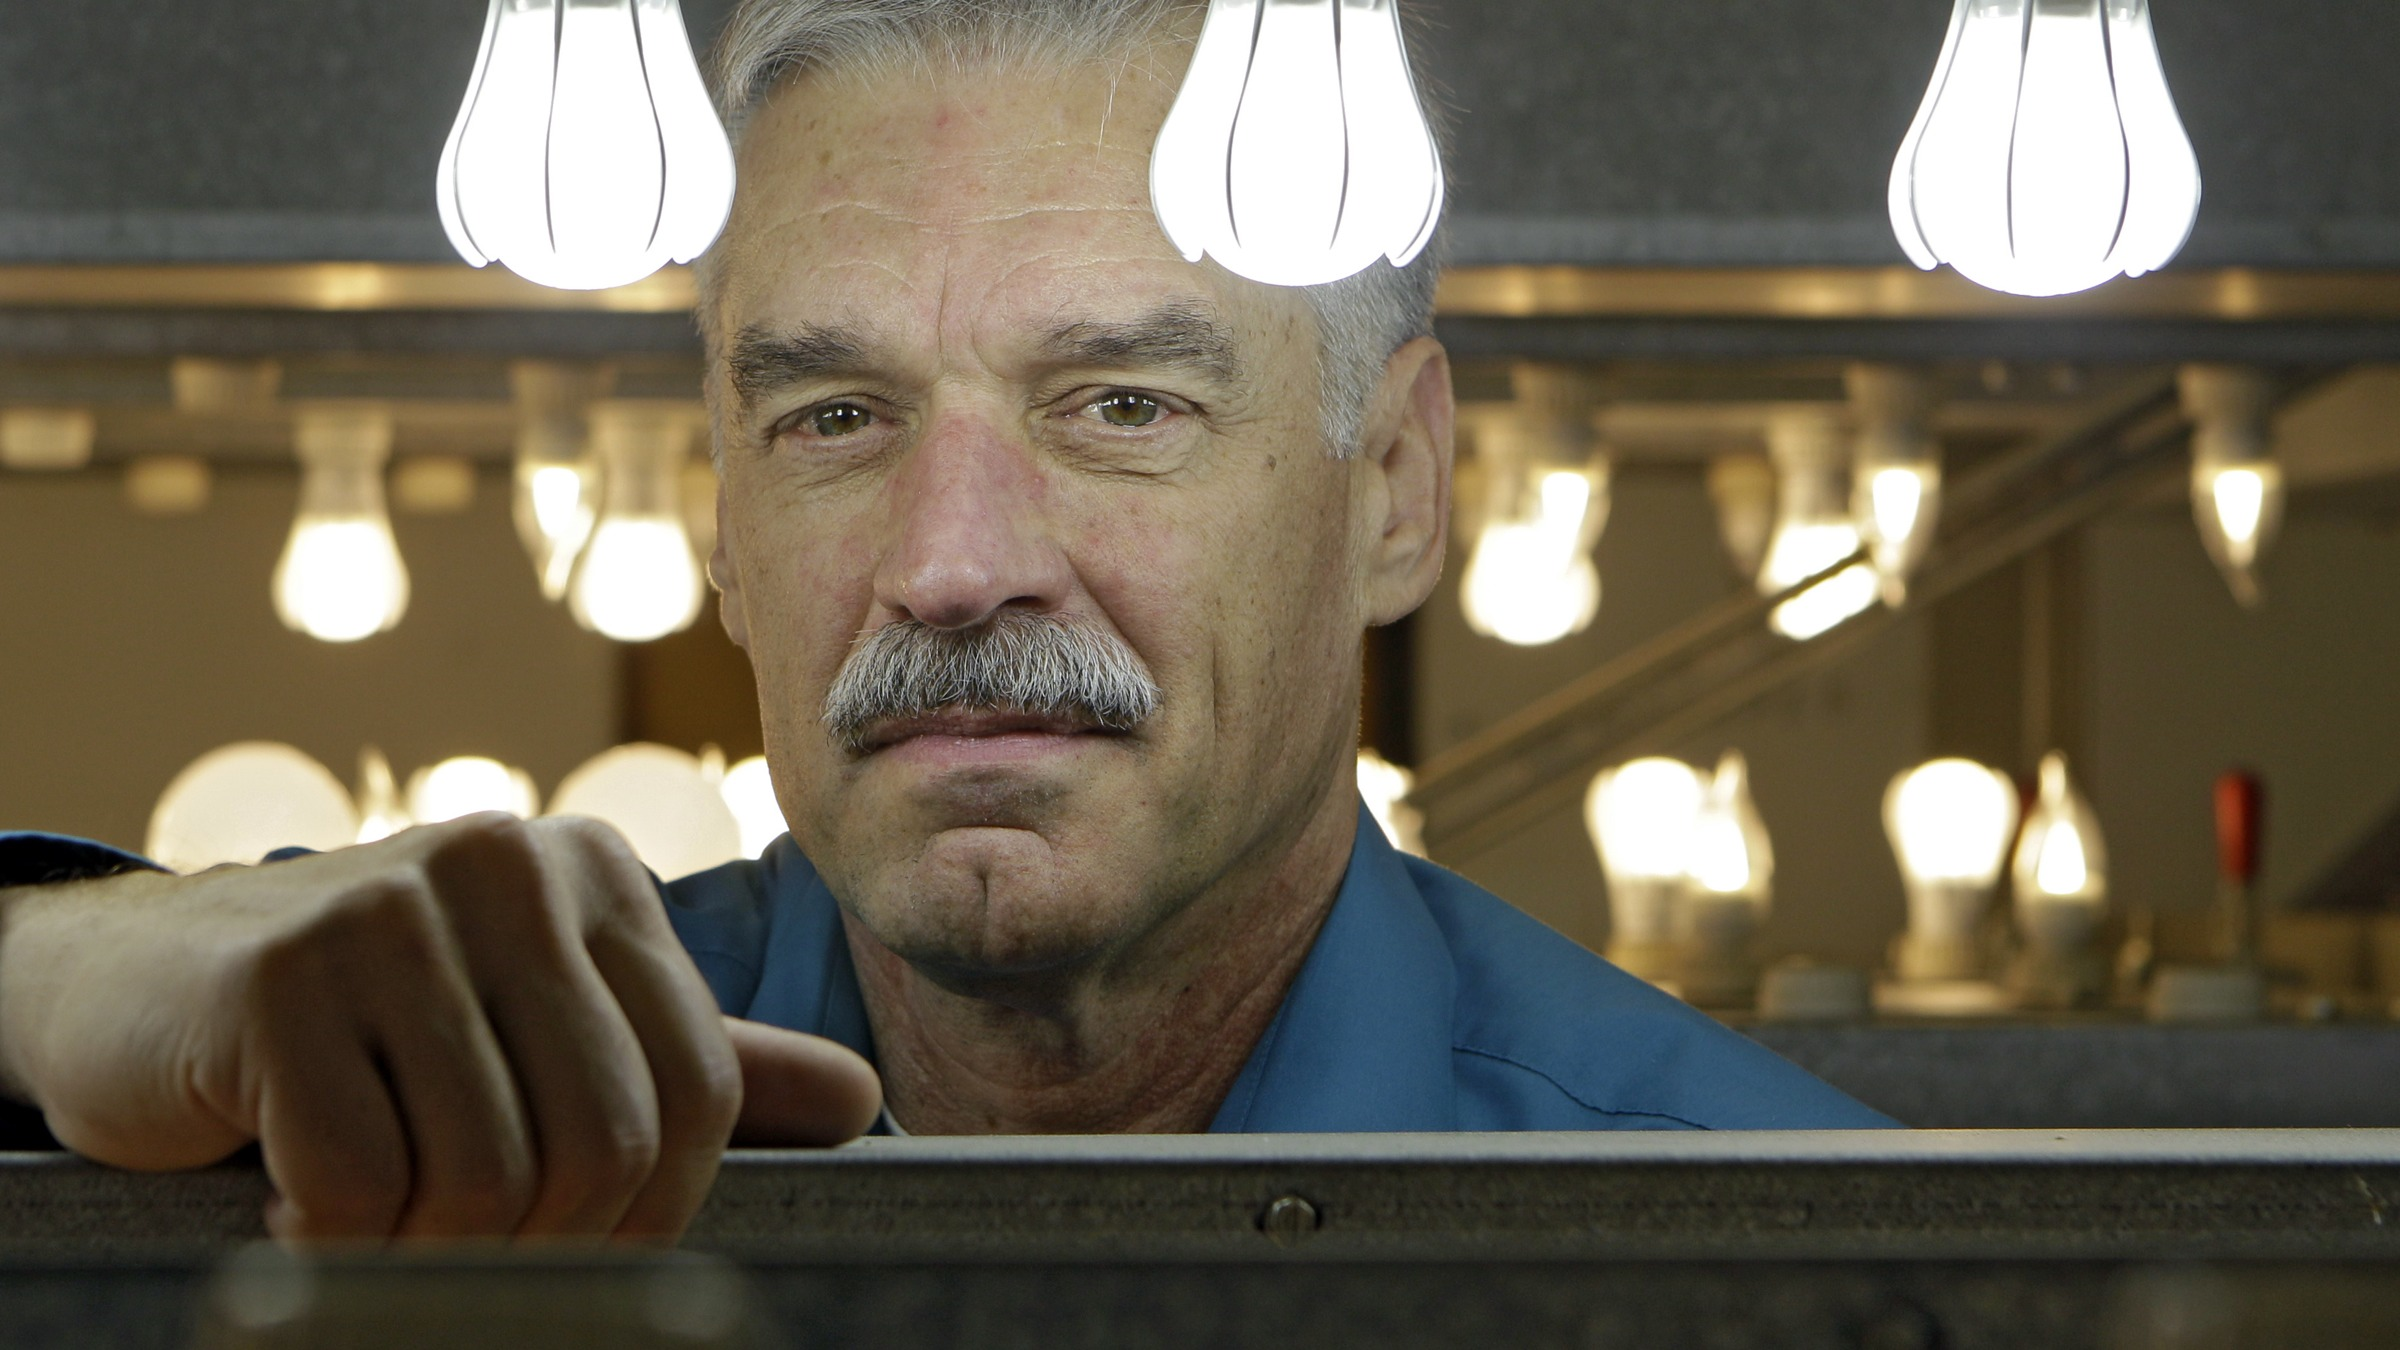 Gary Allen, lead inventor for the General Electric 9-watt Energy Smart® LED light bulb, poses with some of his creations during aging tests at the lighting group's Nela Park headquarters in East Cleveland, Ohio Wednesday, Oct. 19, 2011. (AP Photo/Mark Duncan)